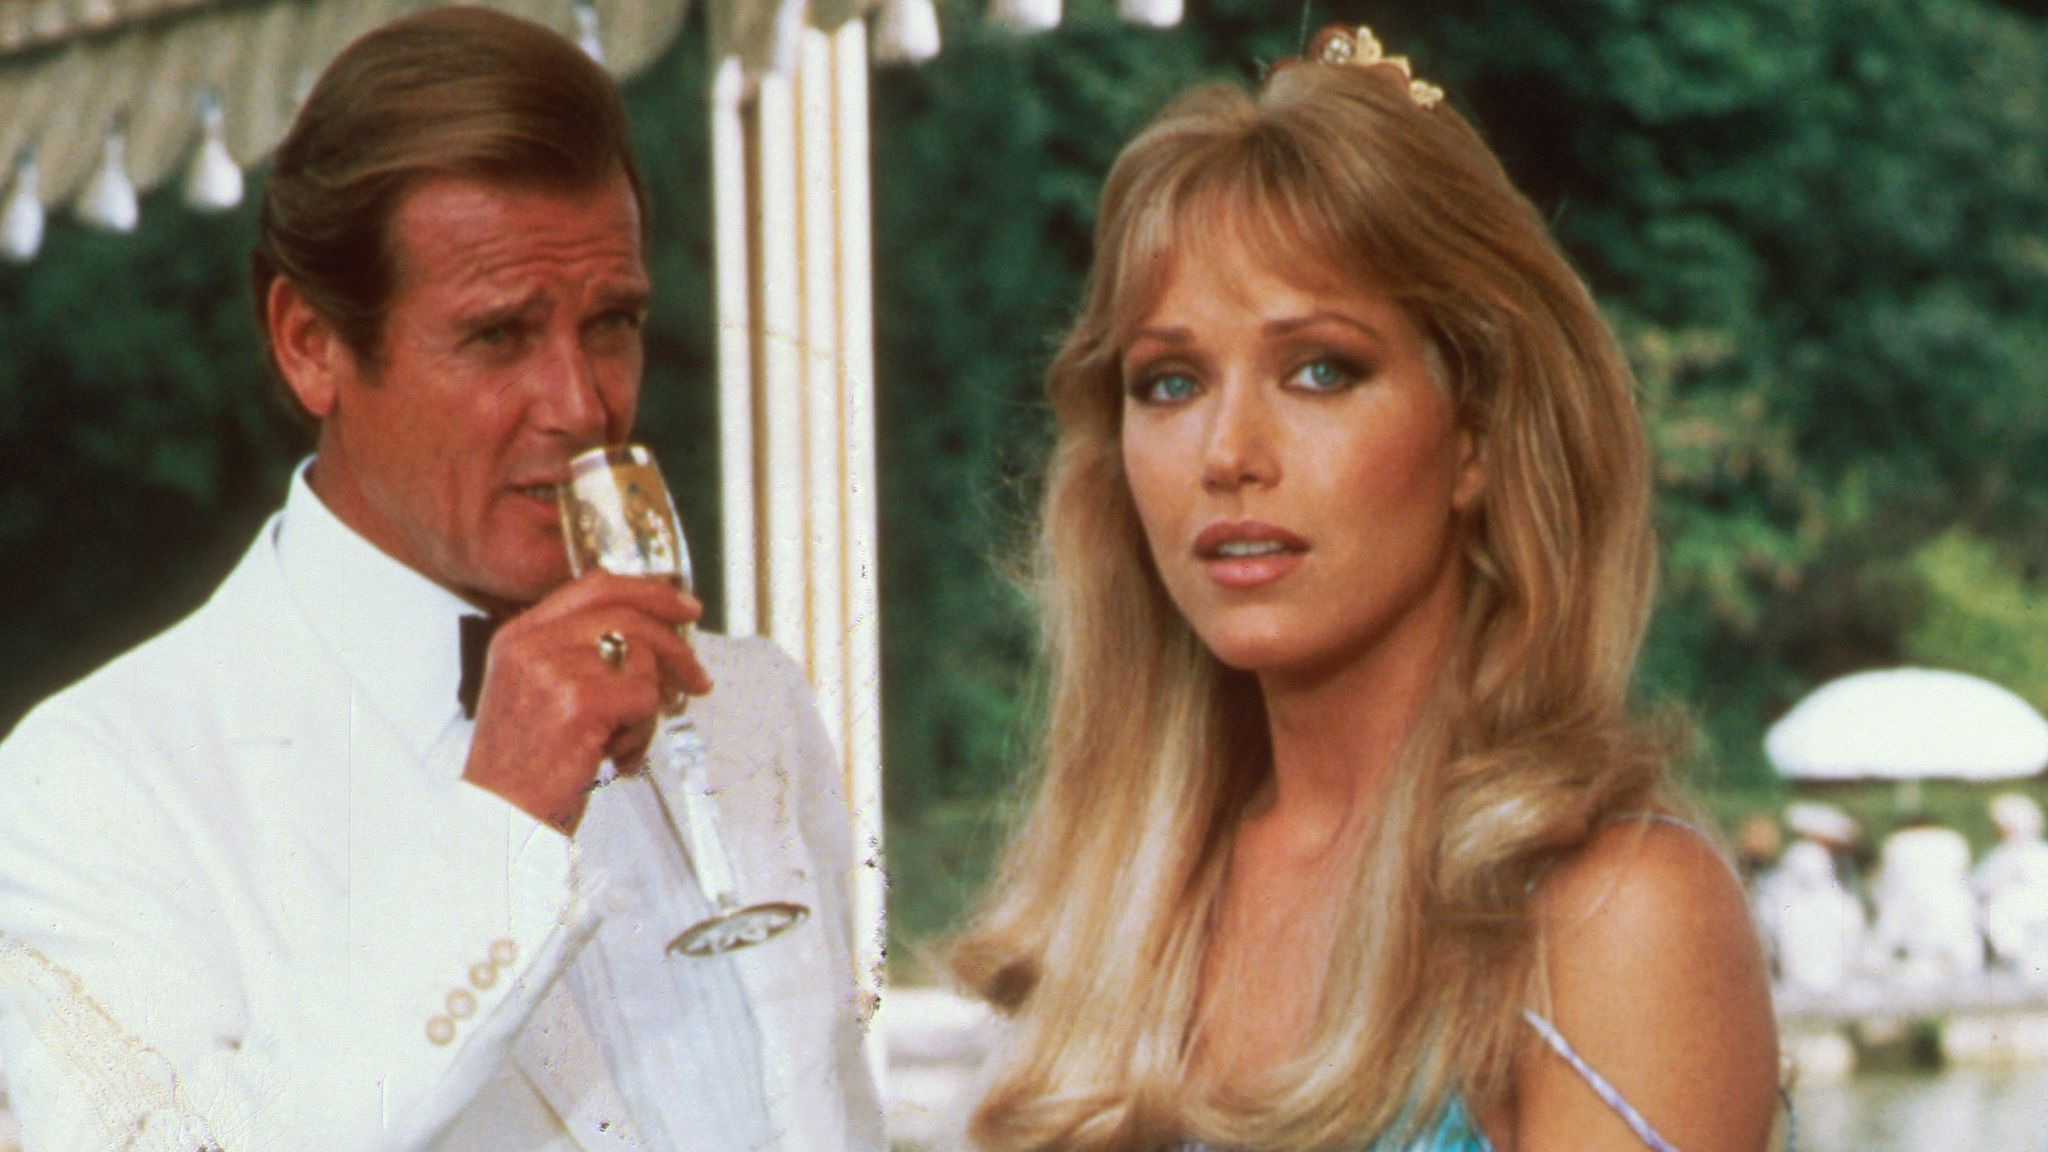 Tanya Roberts death: Bond girl, Charlie's Angels and That '70s Show star dies | Ents & Arts News | Sky News